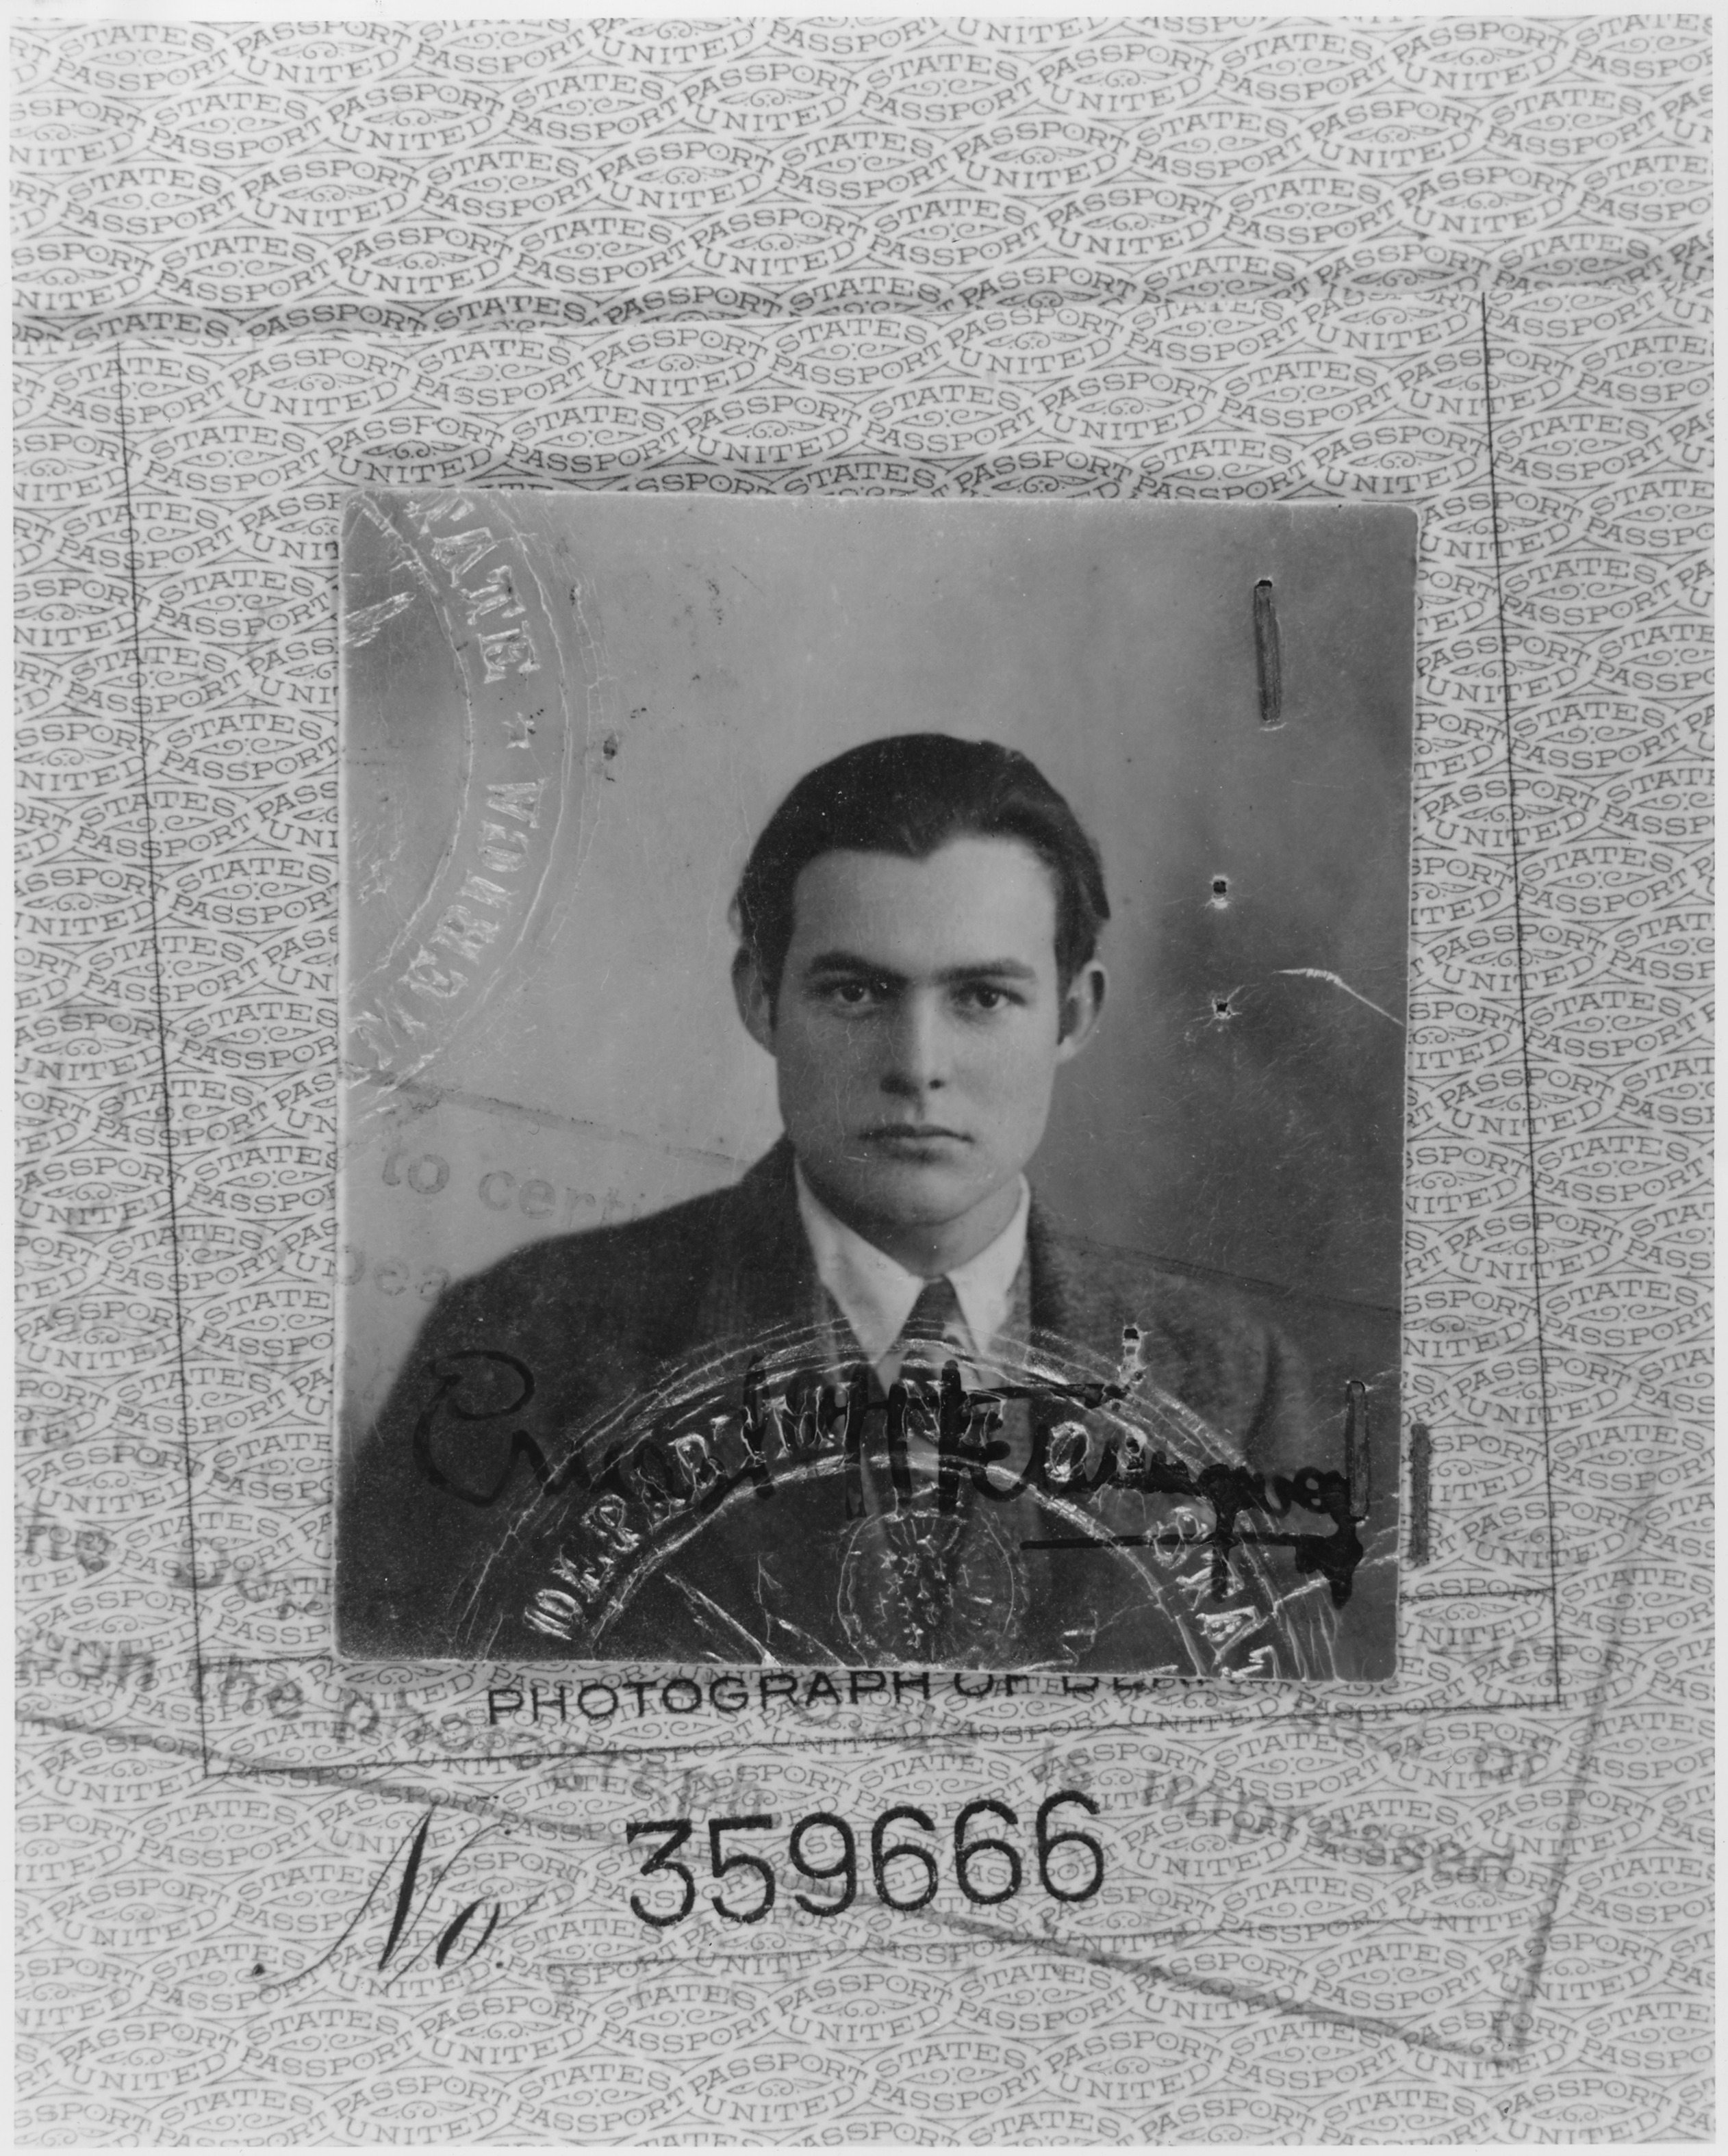 Ernest_Hemingway_passport_photo_40-1548M